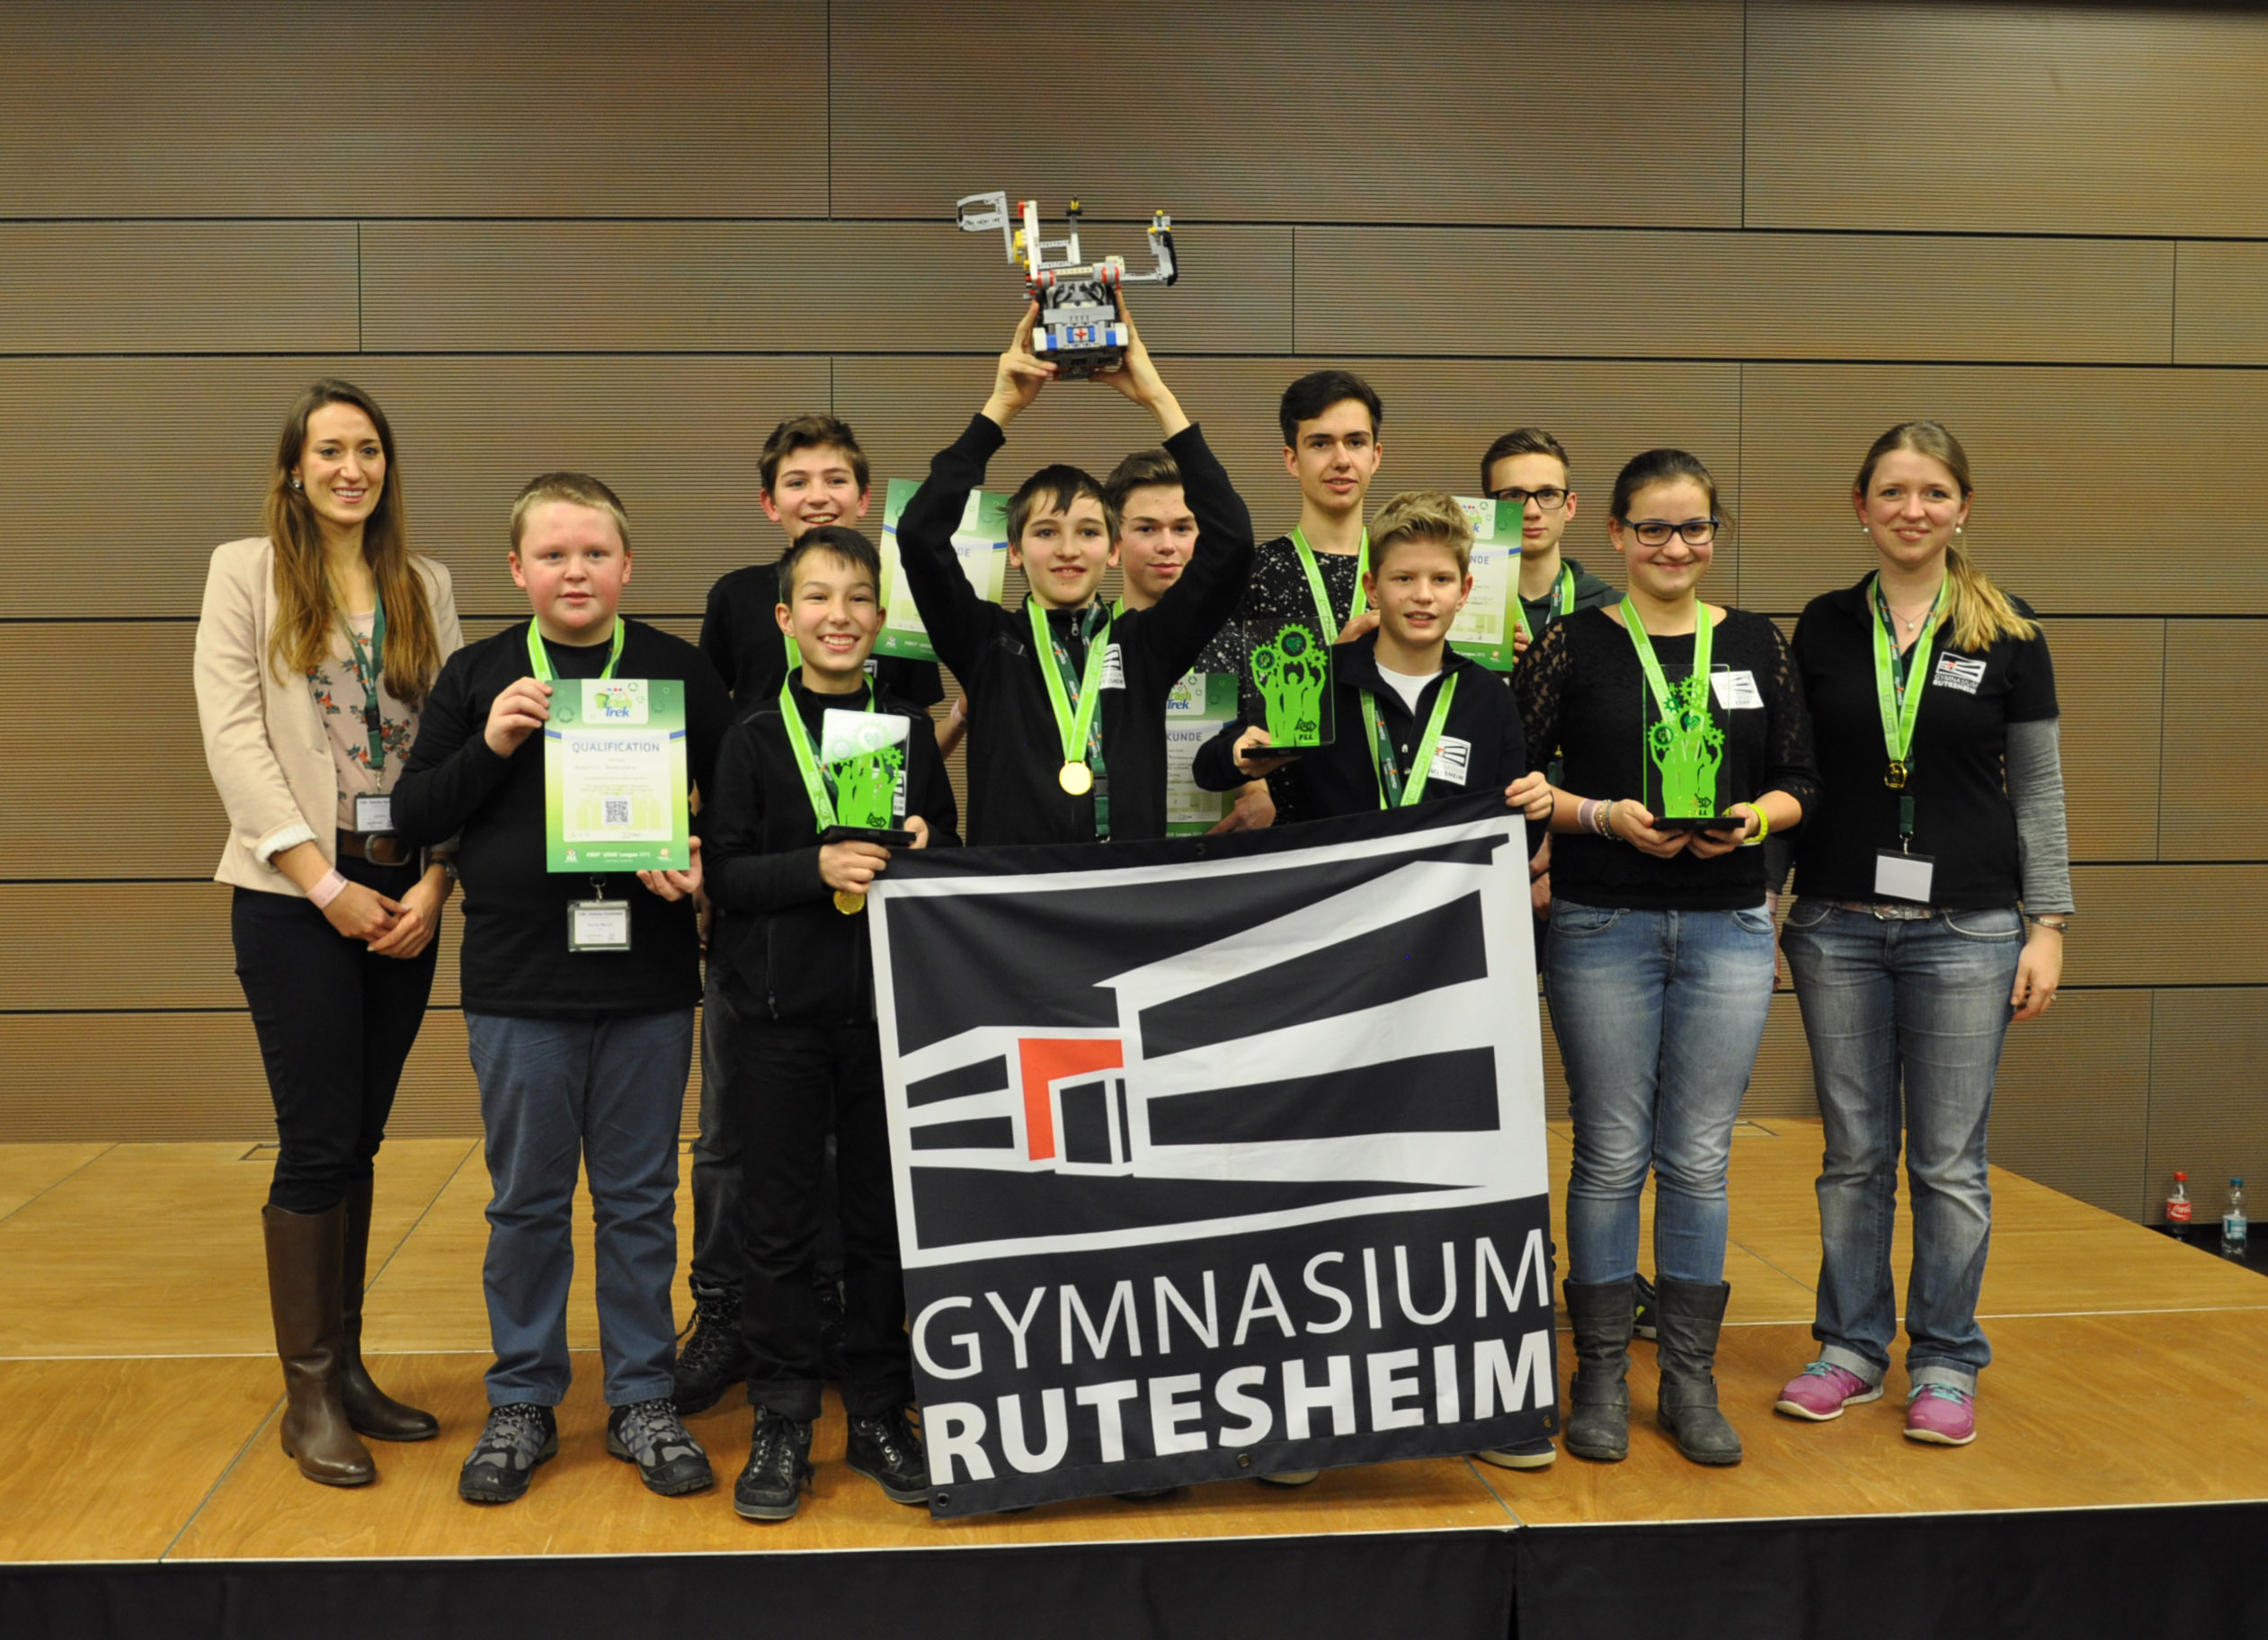 2016 01 16 FirstLegoLeague